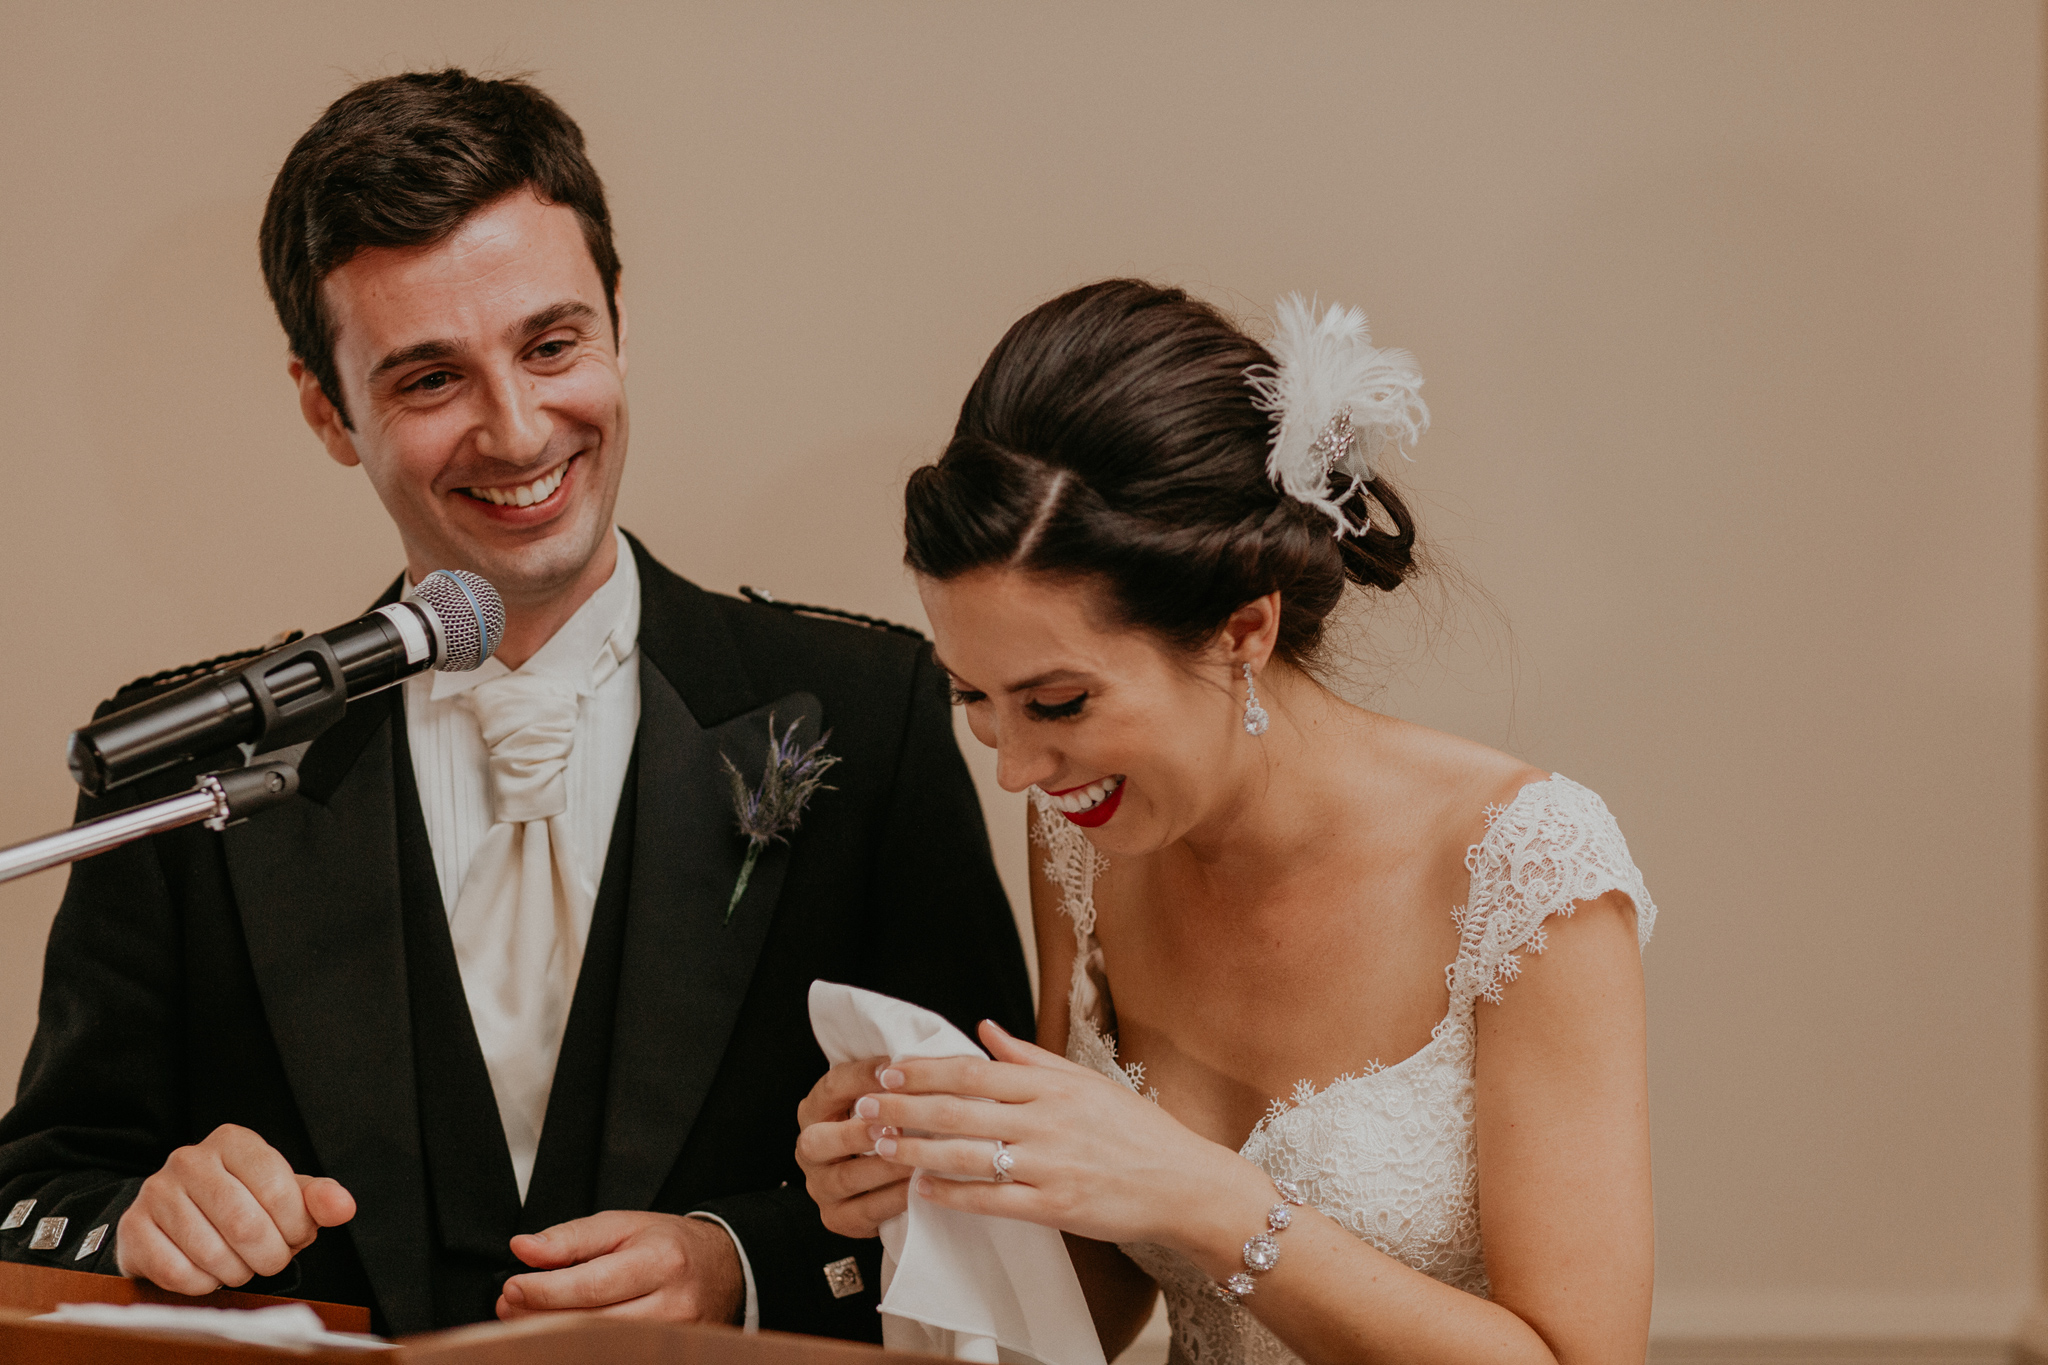 Bride and groom laugh in candid photo during speech